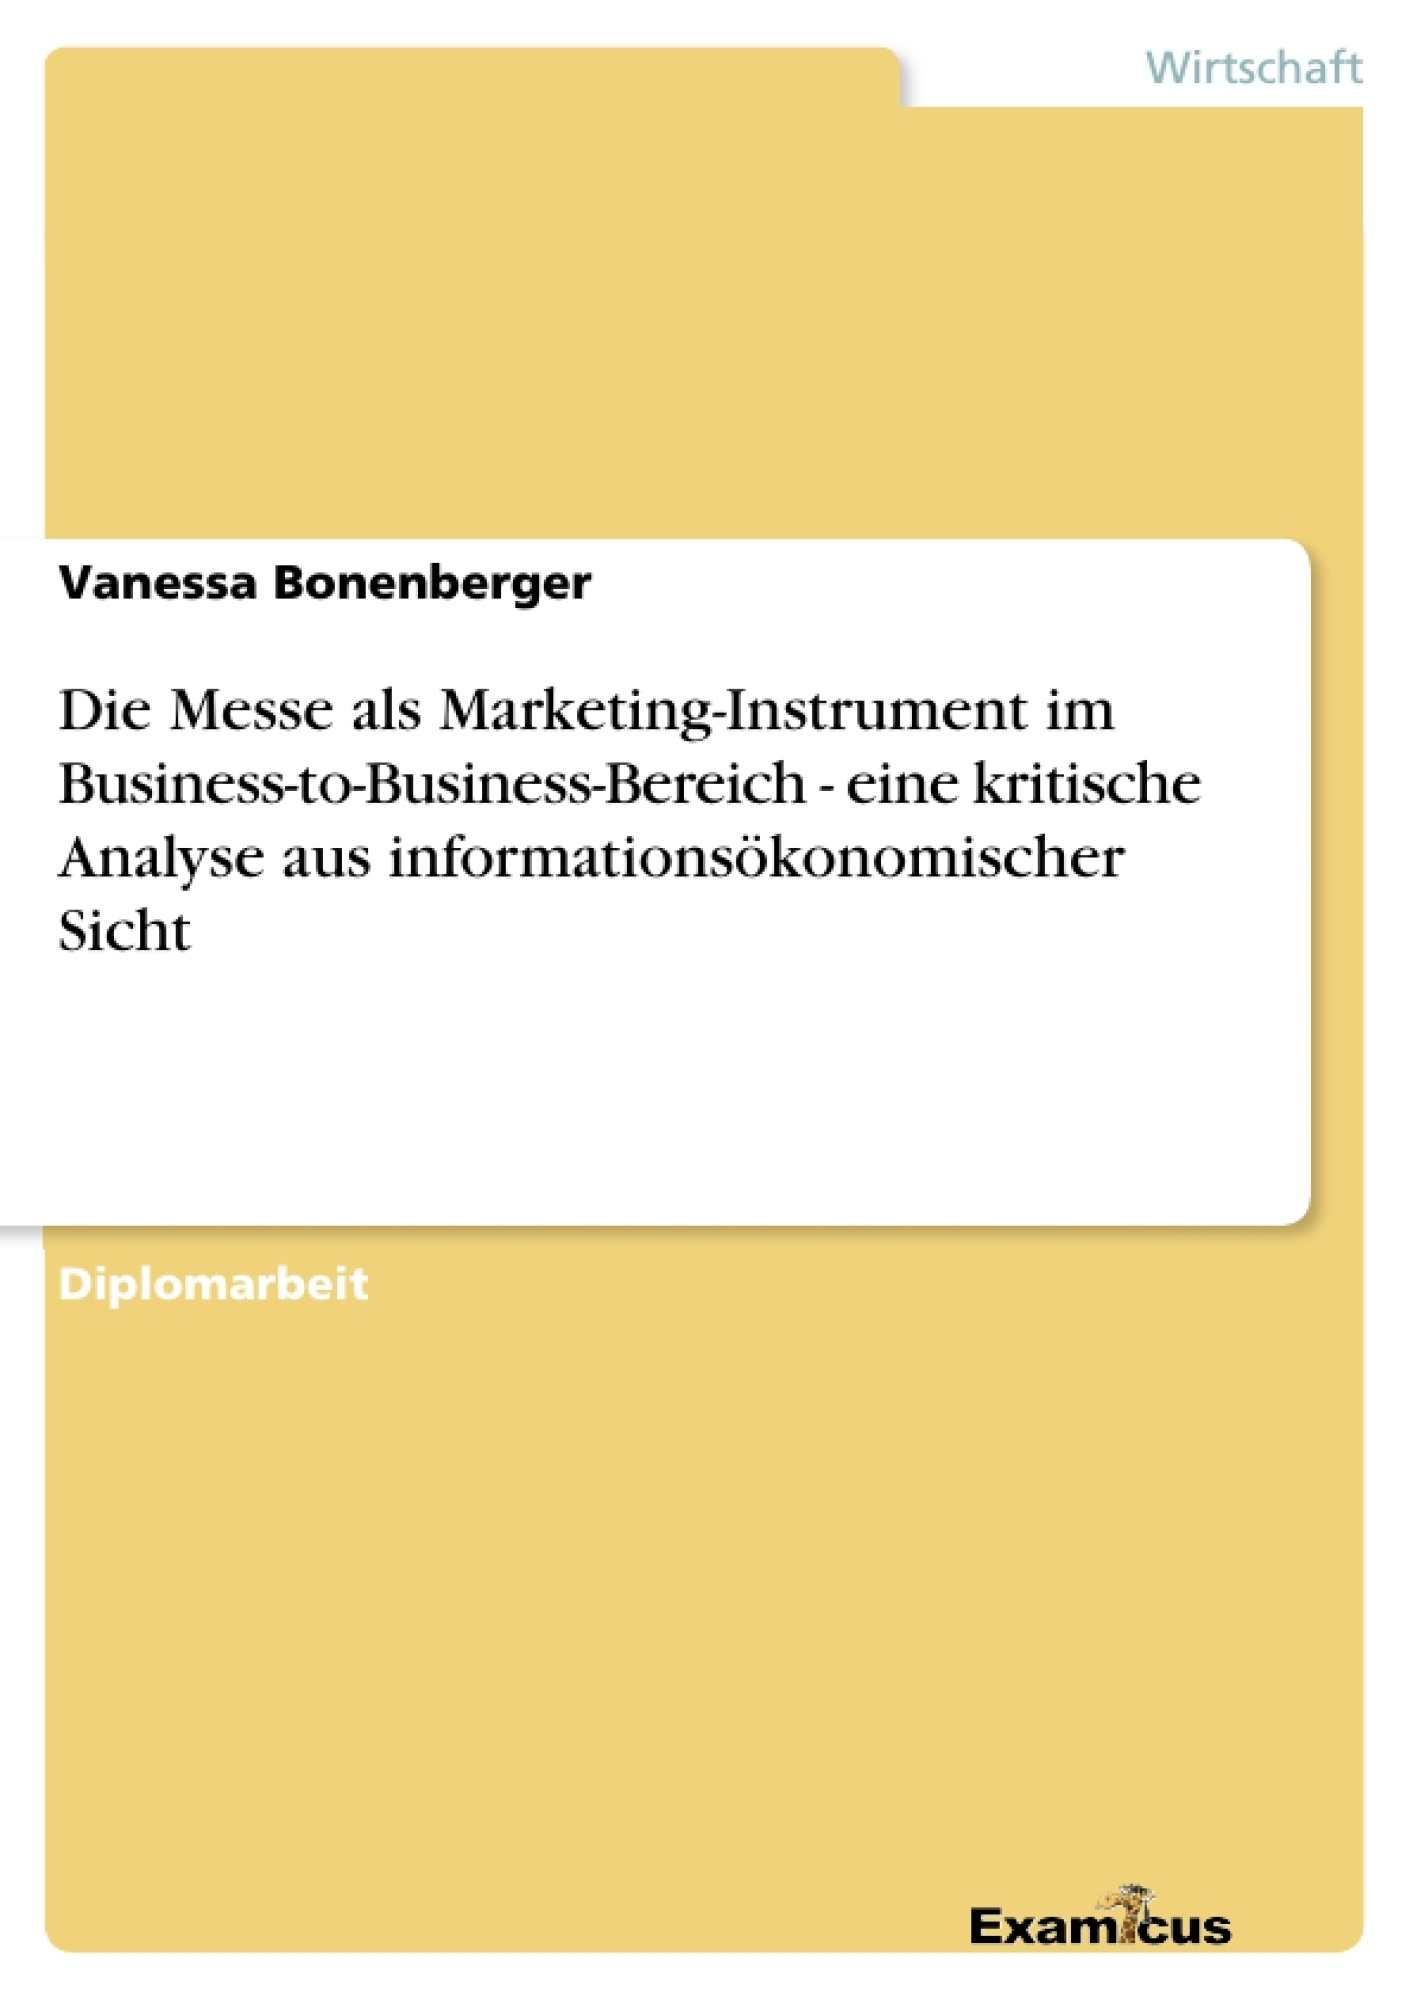 Titel: Die Messe als Marketing-Instrument im Business-to-Business-Bereich - eine kritische Analyse aus informationsökonomischer Sicht